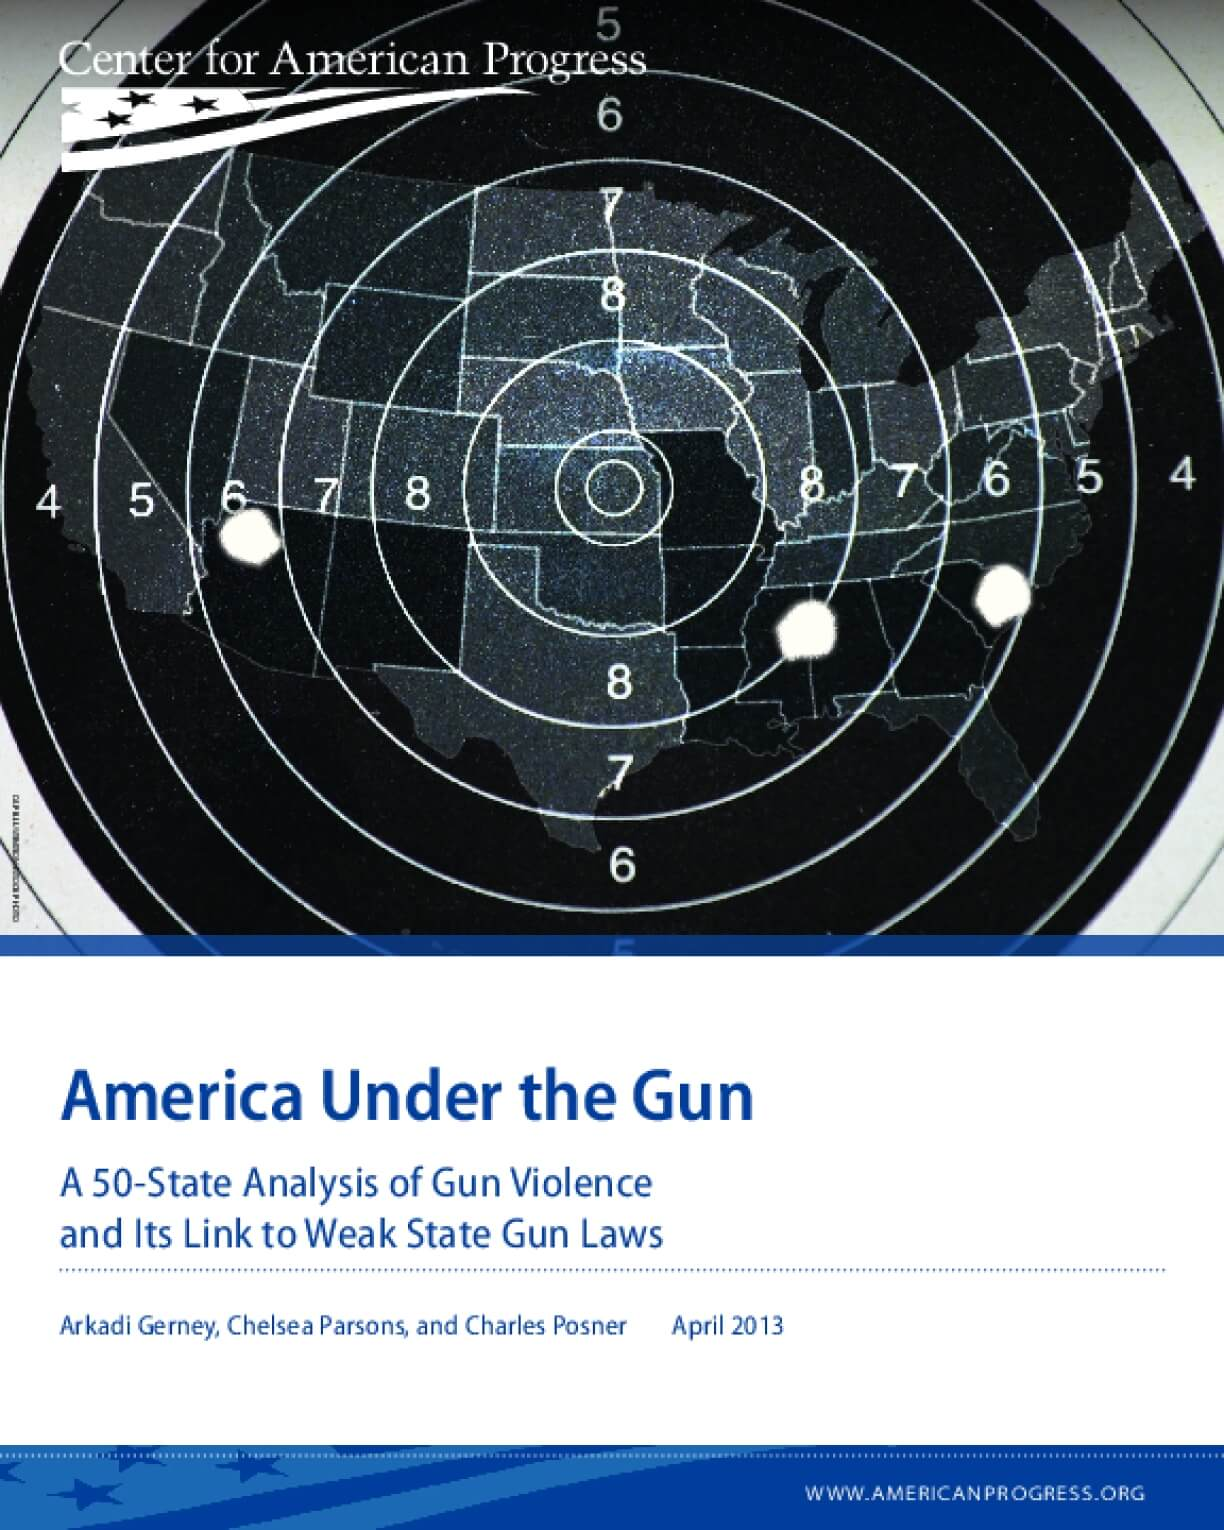 America Under the Gun: A 50-State Analysis of Gun Violence and its Link to Weak State Gun Laws